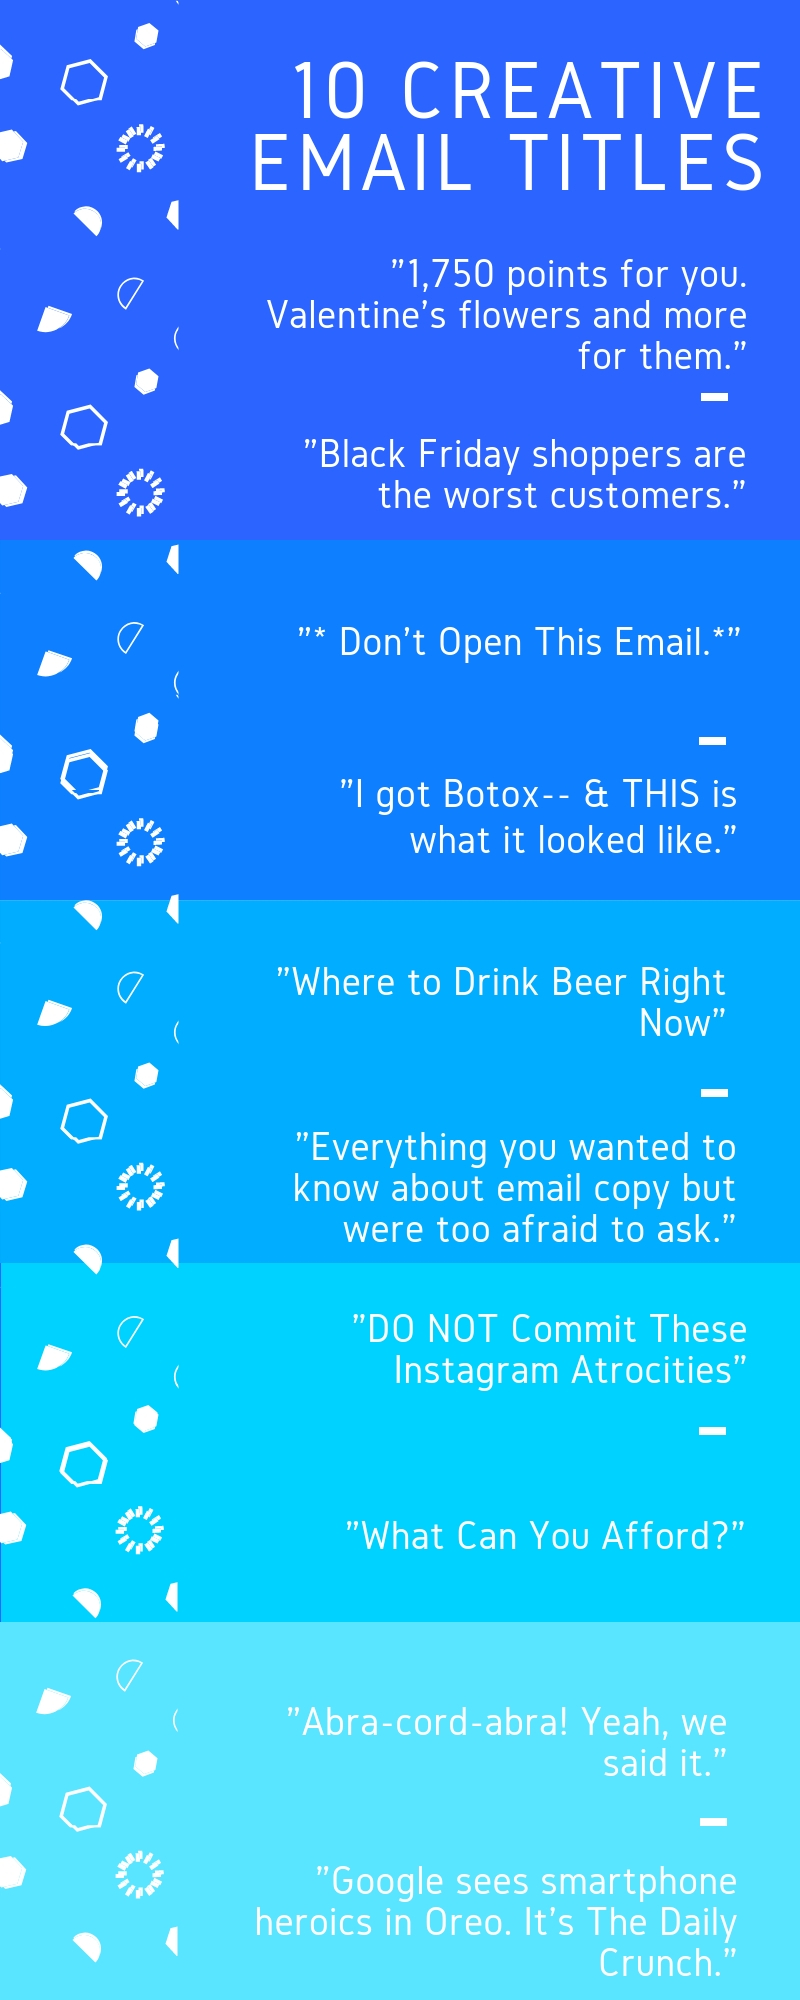 10 Creative Email titles